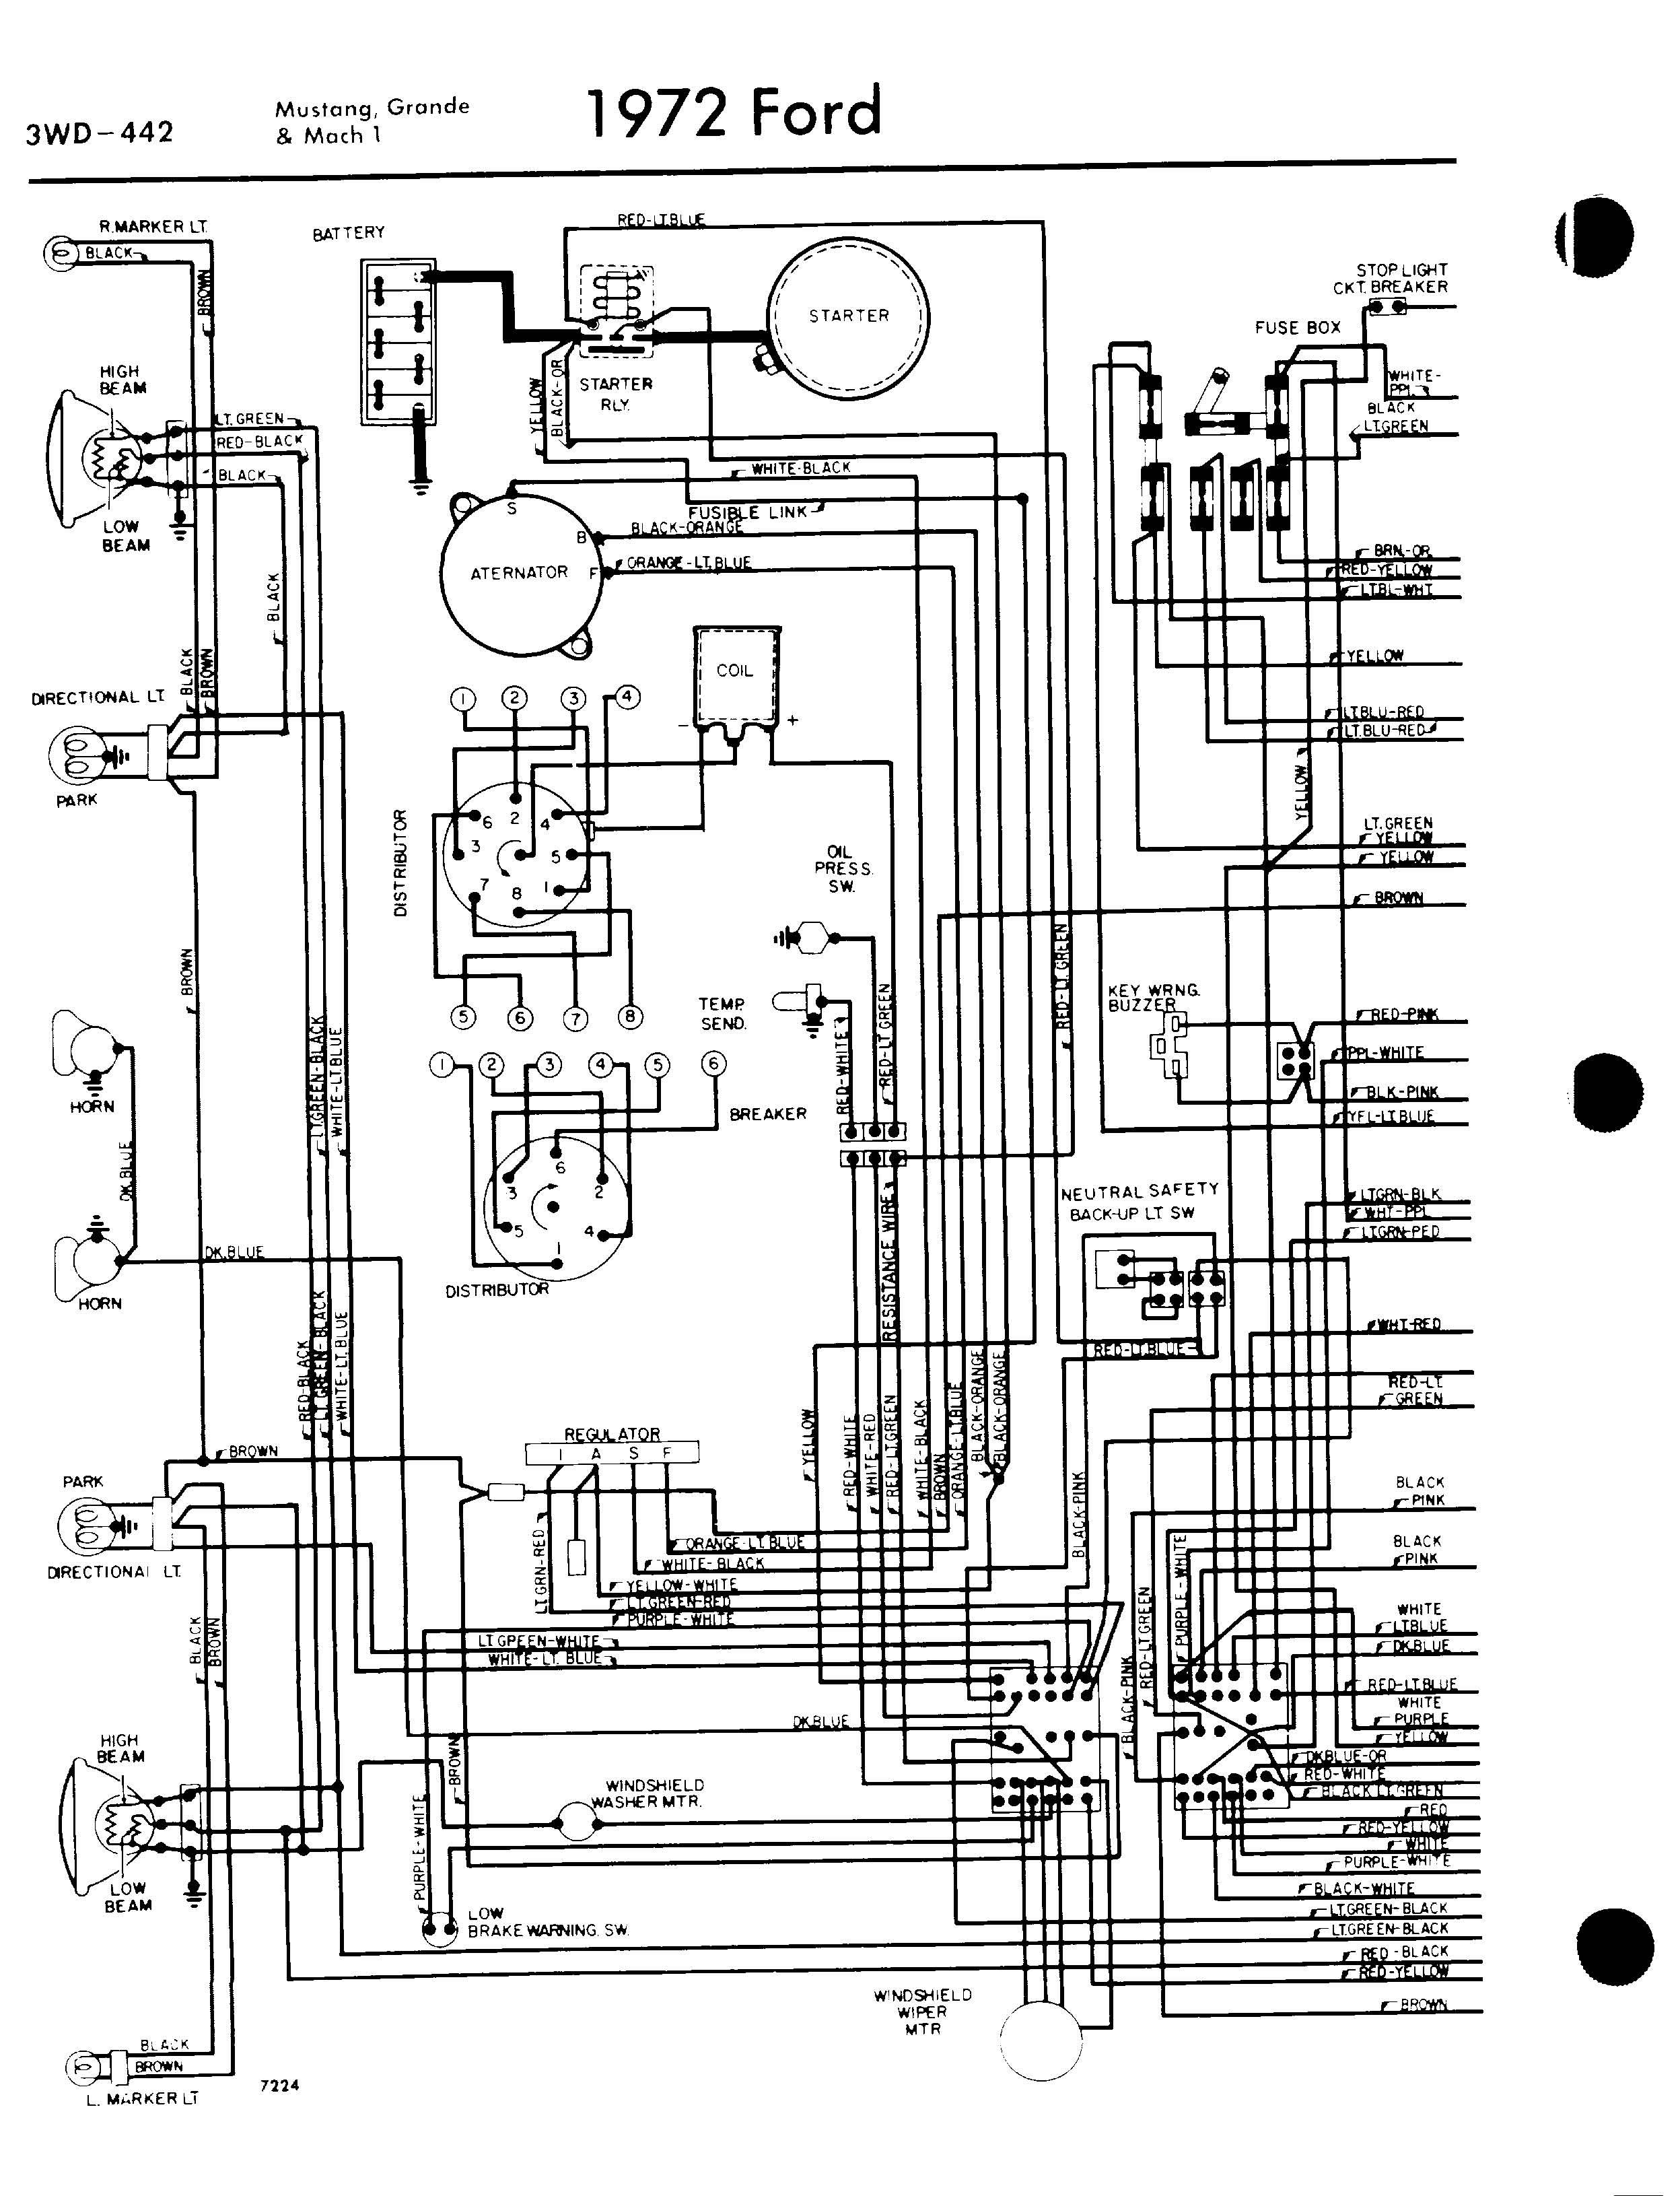 71af7a58e095e6a7716b32f1b23e8bd2 72 mach1 alternator wire harness diagram yahoo search results Simple Electrical Wiring Diagrams at readyjetset.co